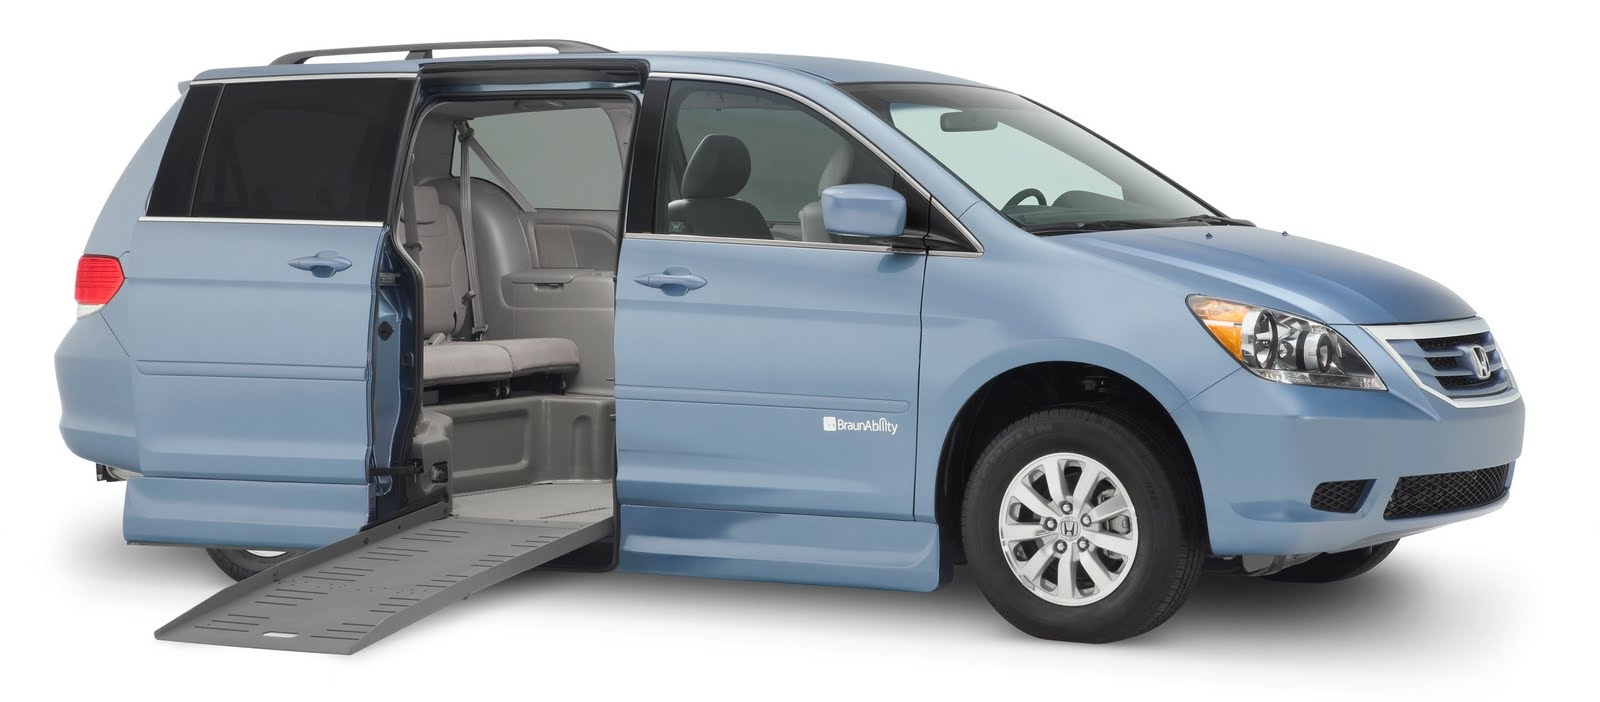 Wheelchair Accessible Vehicles: Ability Center Now Carries New BraunAbility Vans